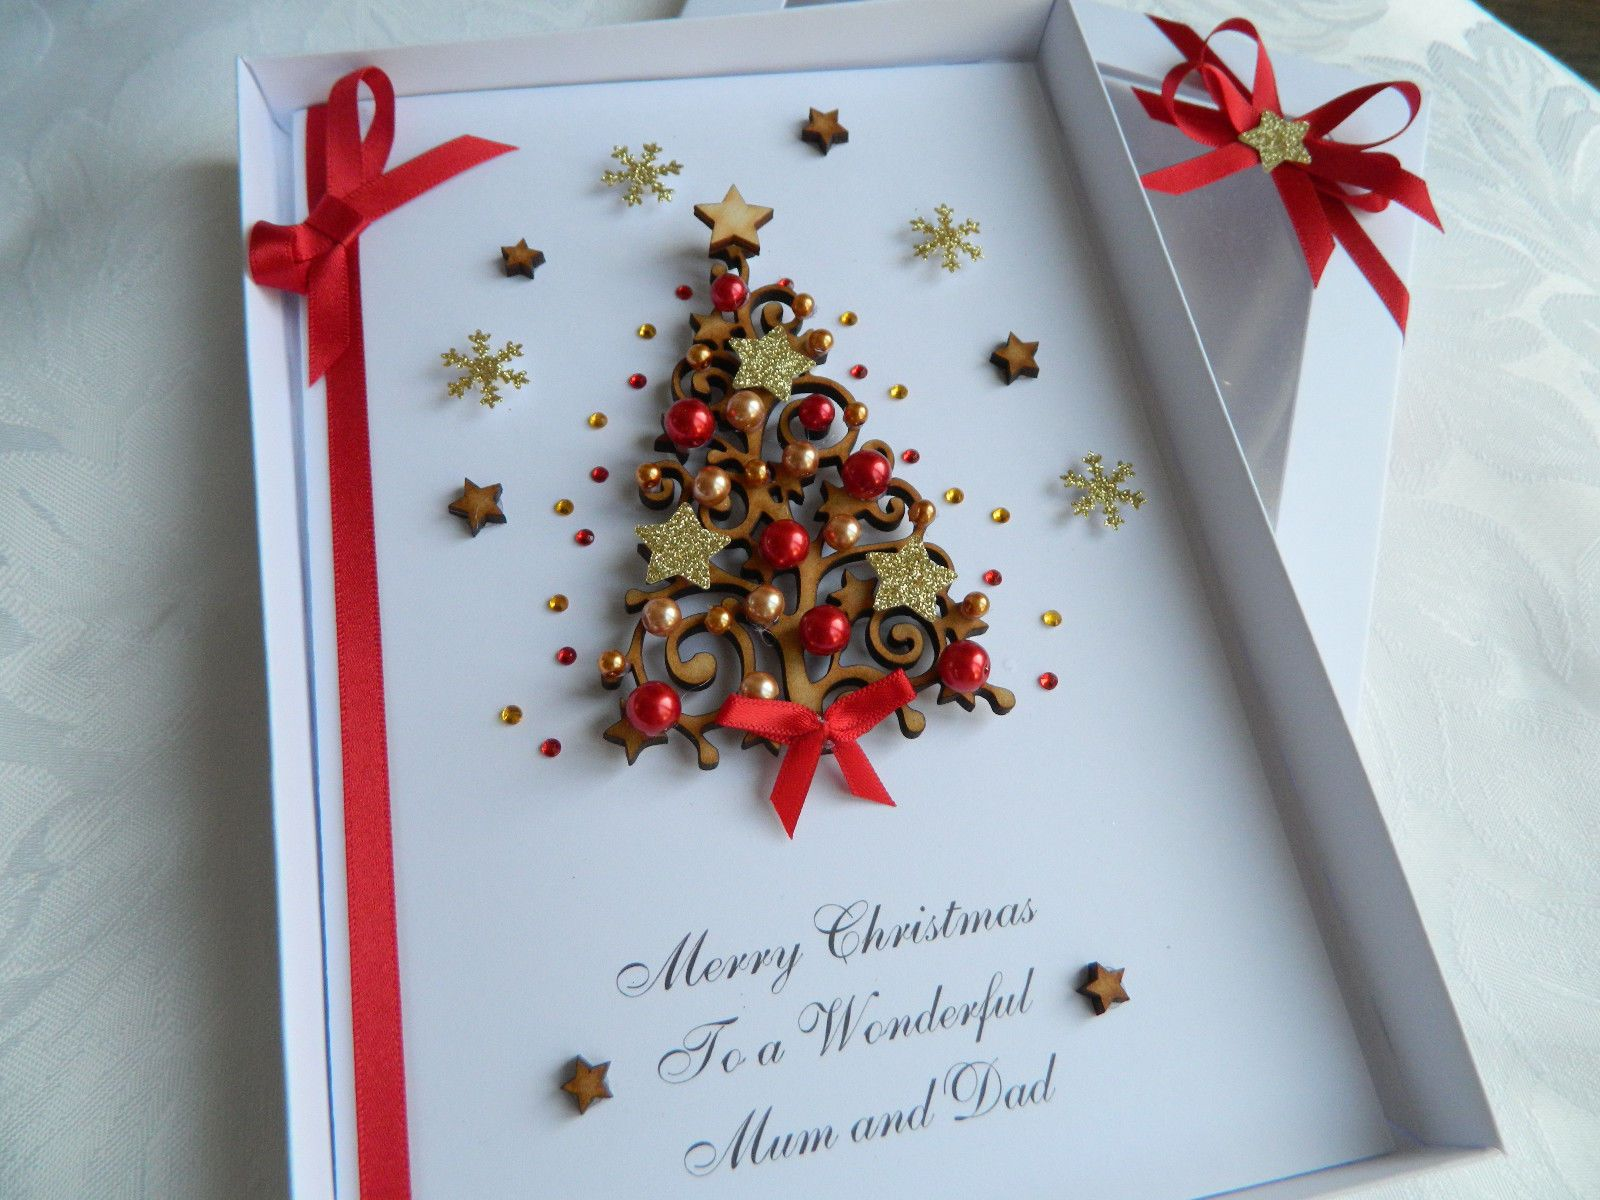 Details about Luxury Personalised HANDMADE Christmas Card